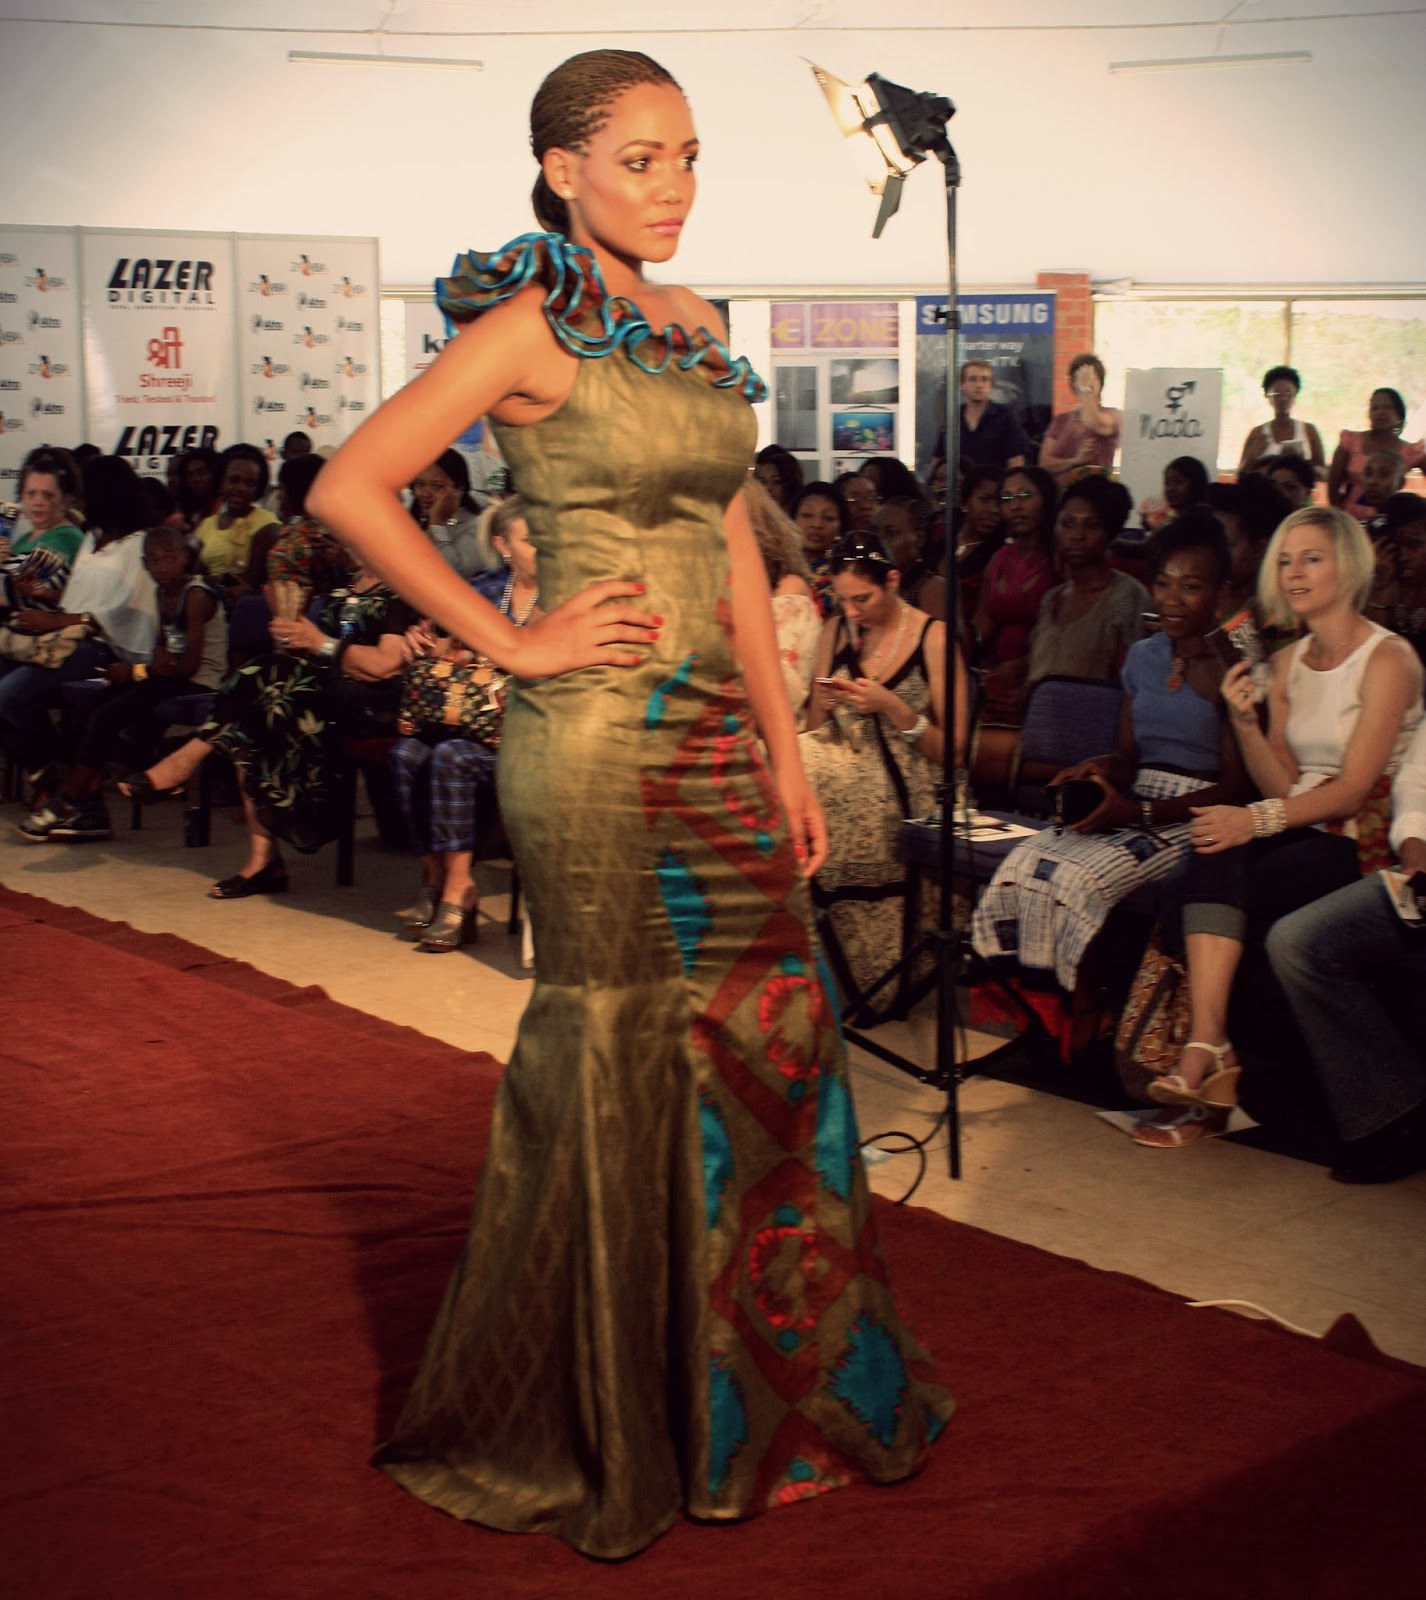 D Exhibition Zambia : Afro funk fahsionably late zambia fashion week review